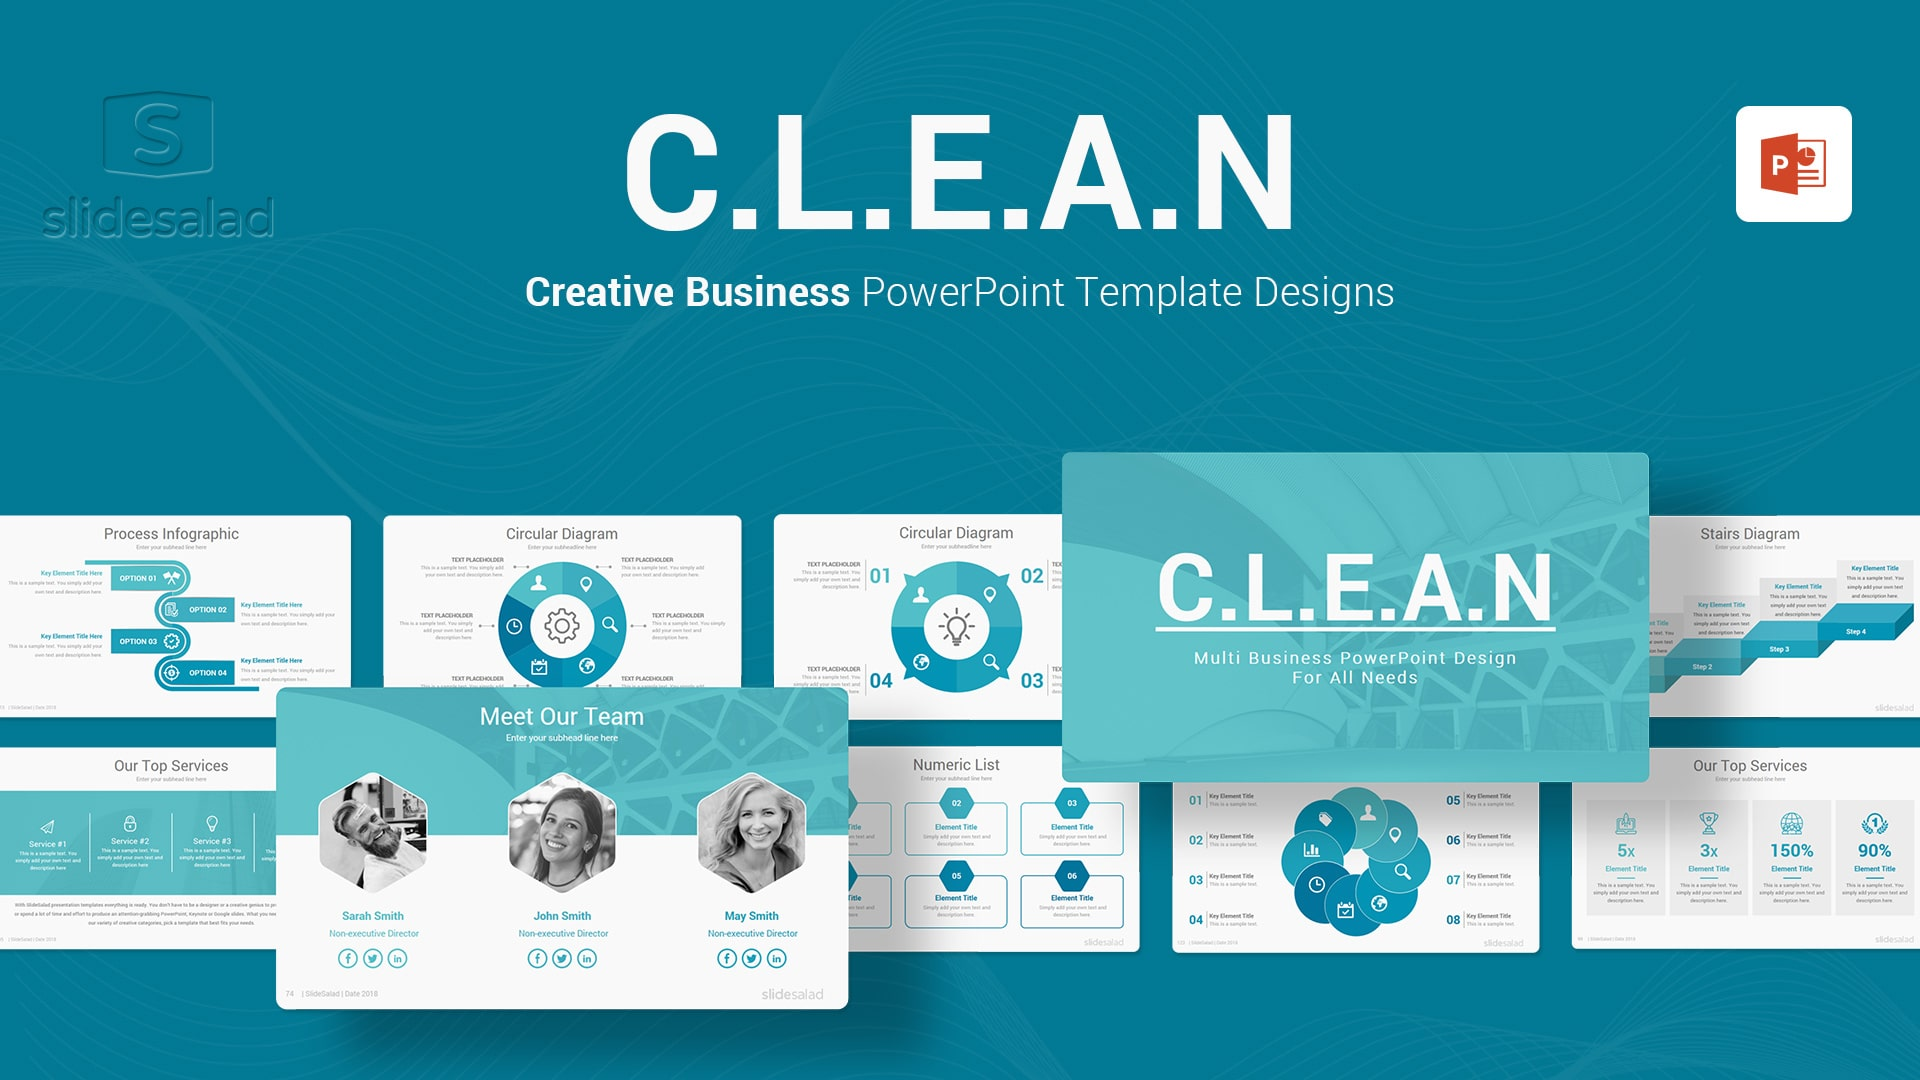 Clean Business PowerPoint Templates - Minimal Fully Modifiable Business PowerPoint Template